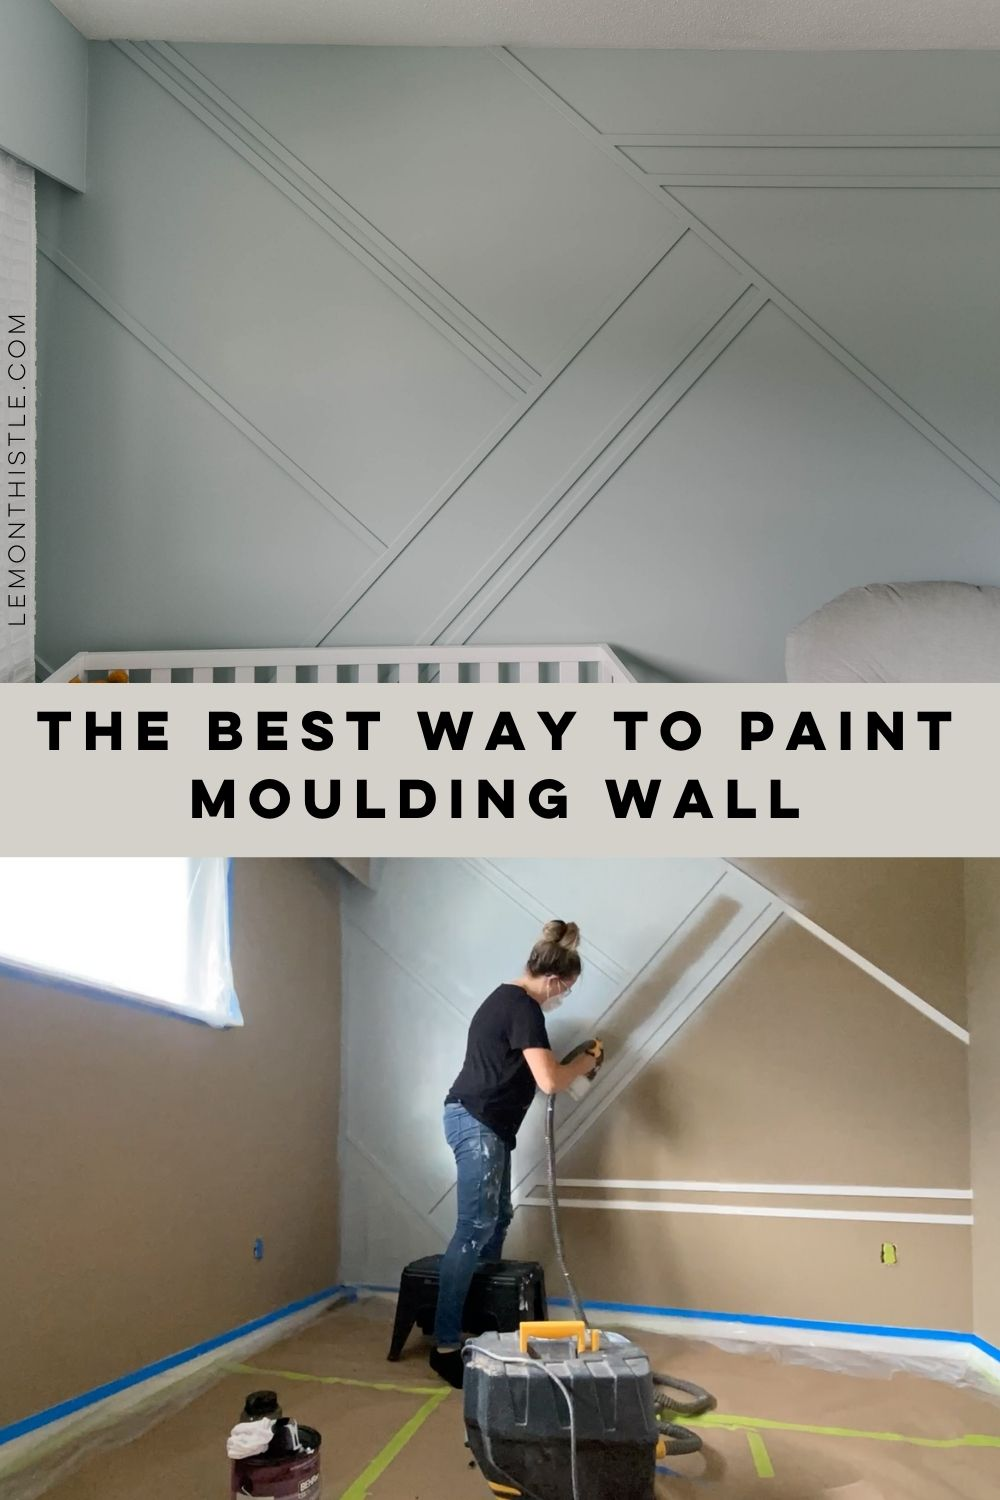 Painting a Moulding Wall